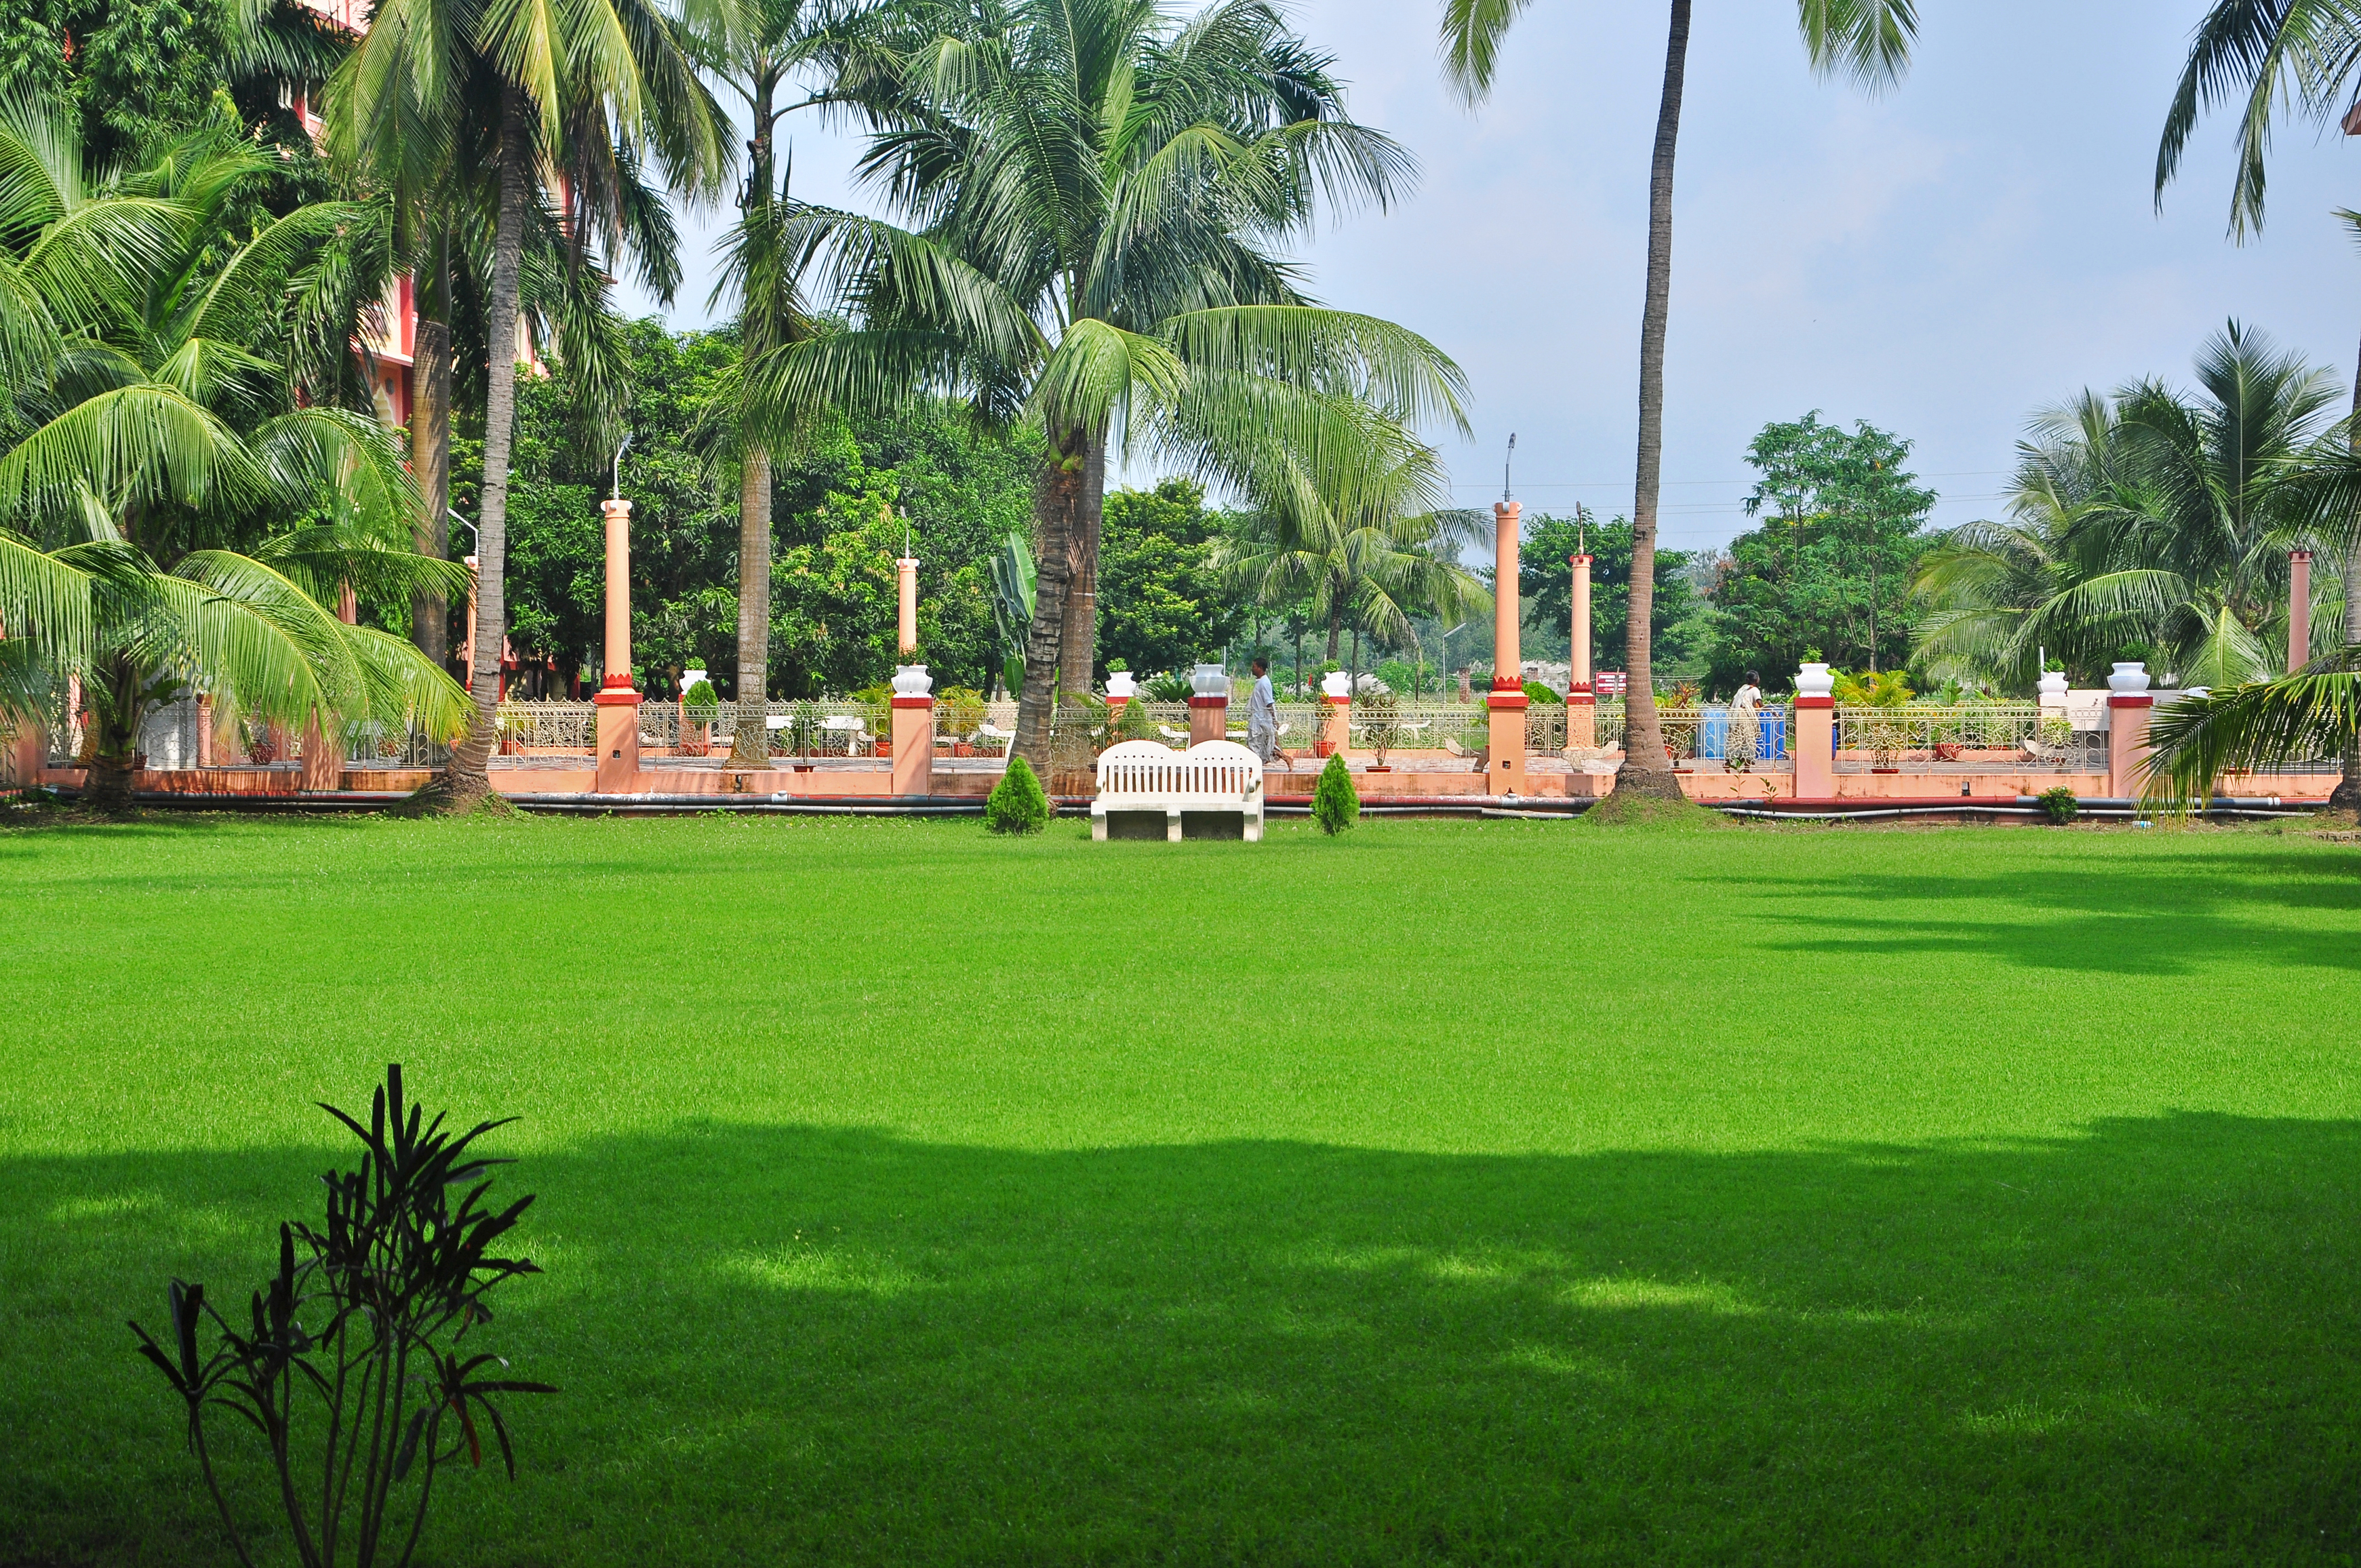 File:Garden at ISKCON, Mayapur 07102013 jpg - Wikimedia Commons